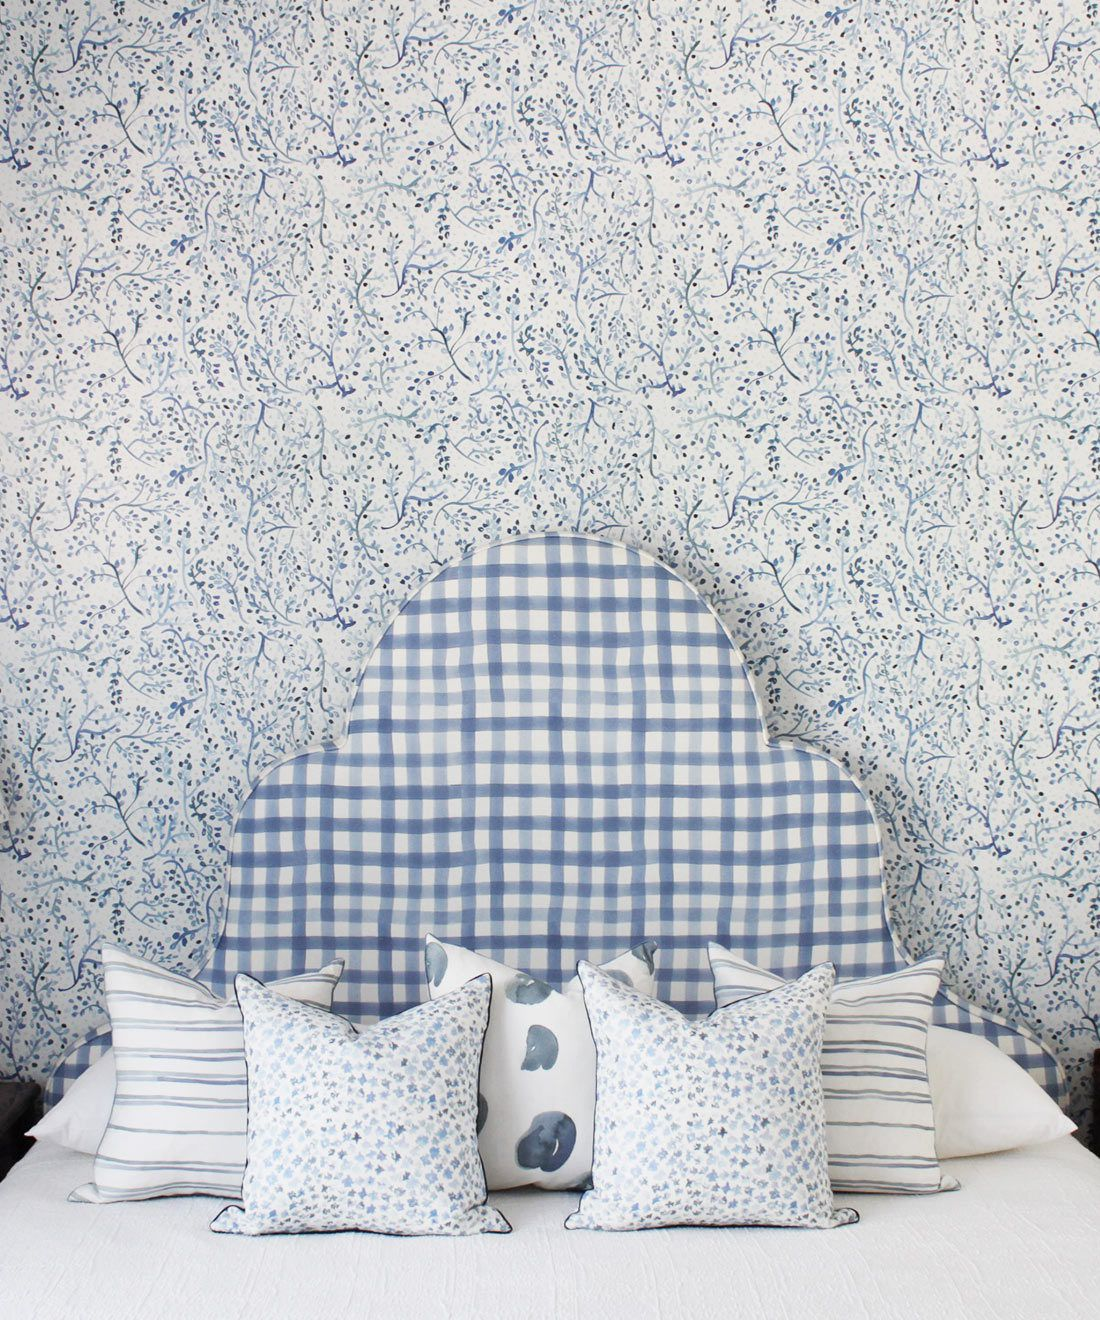 Indigo Garden • Blue Botanical Wallpaper • Floral • Bedroom with plaid blue headboard and white pillows. Milton & King Europe